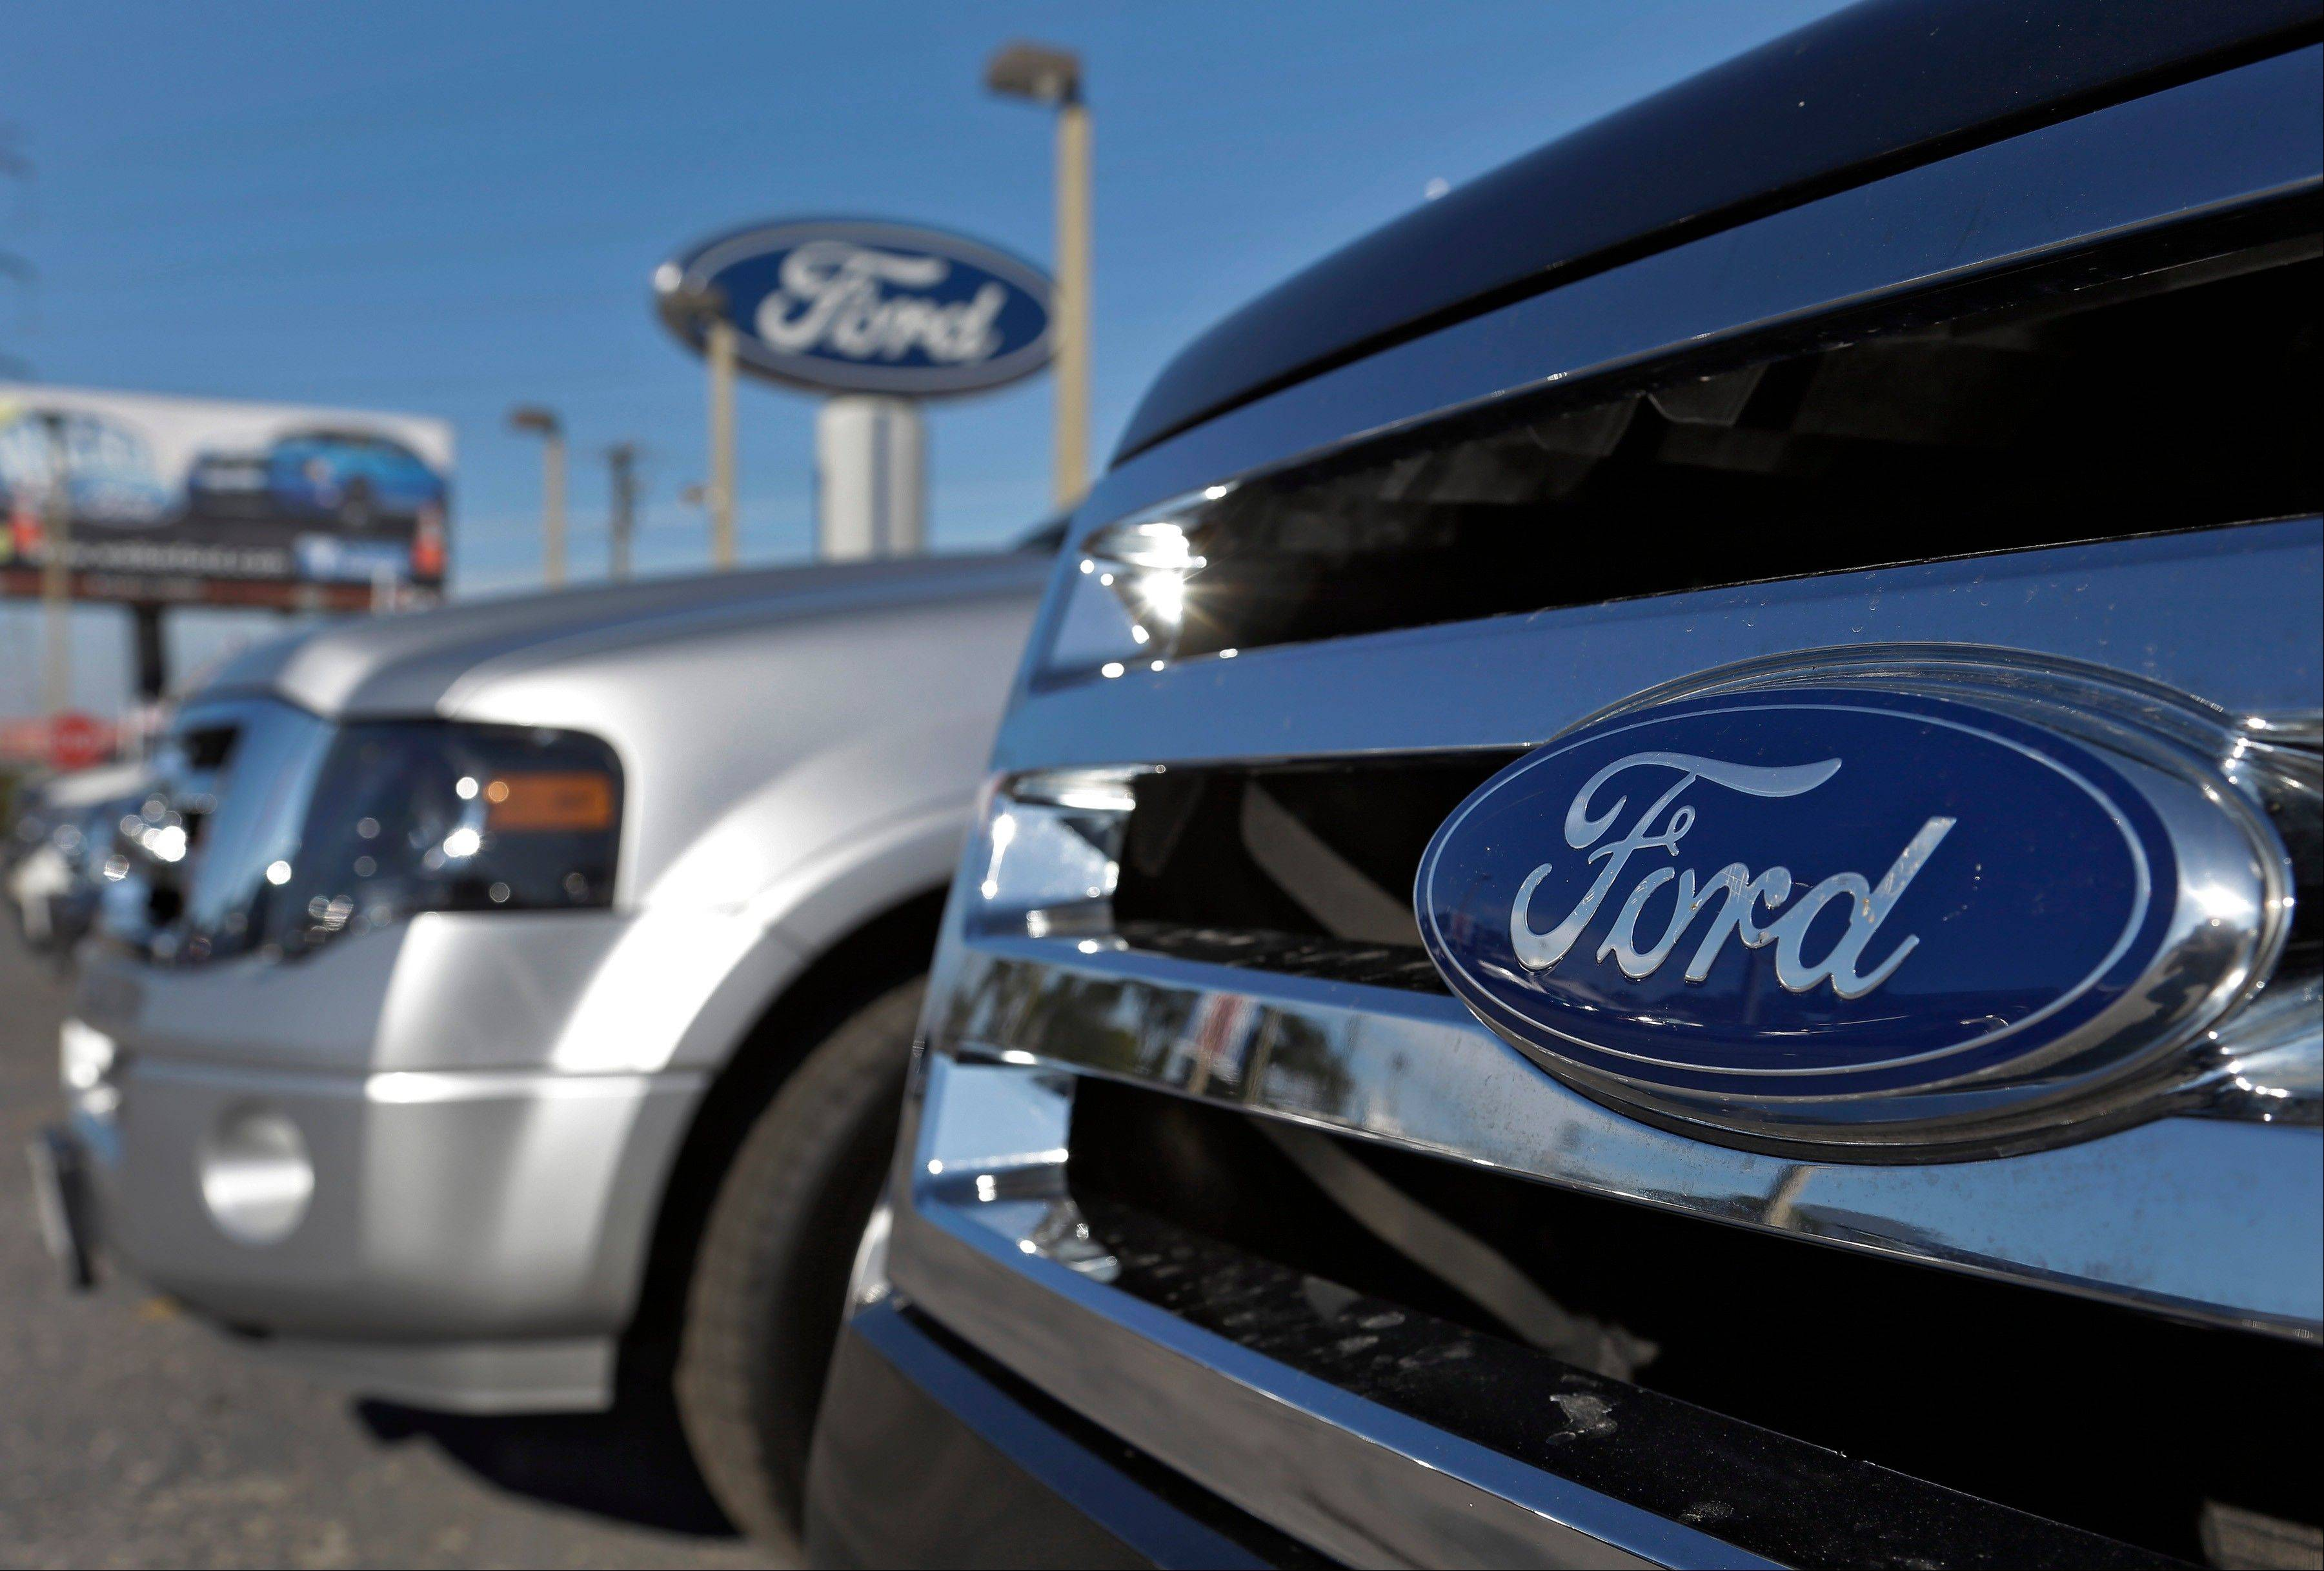 GE said Tuesday it is buying 2,000 plug-in hybrid cars from Ford for its corporate fleet.